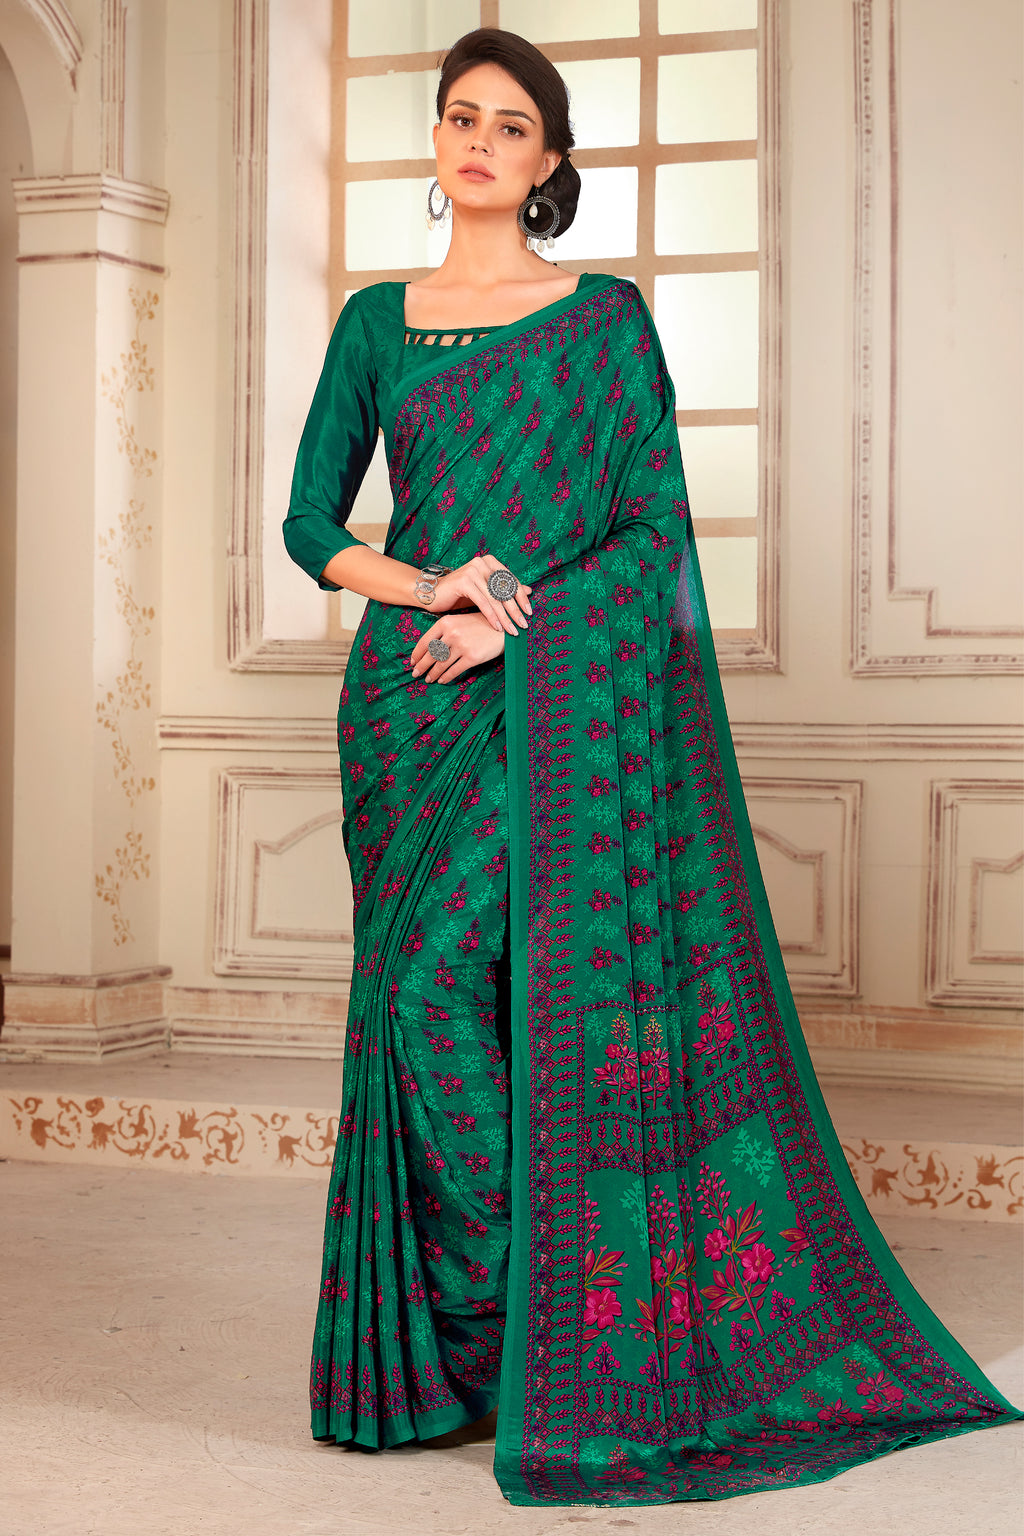 Green Color Crepe  Kitty Party Sarees NYF-8058